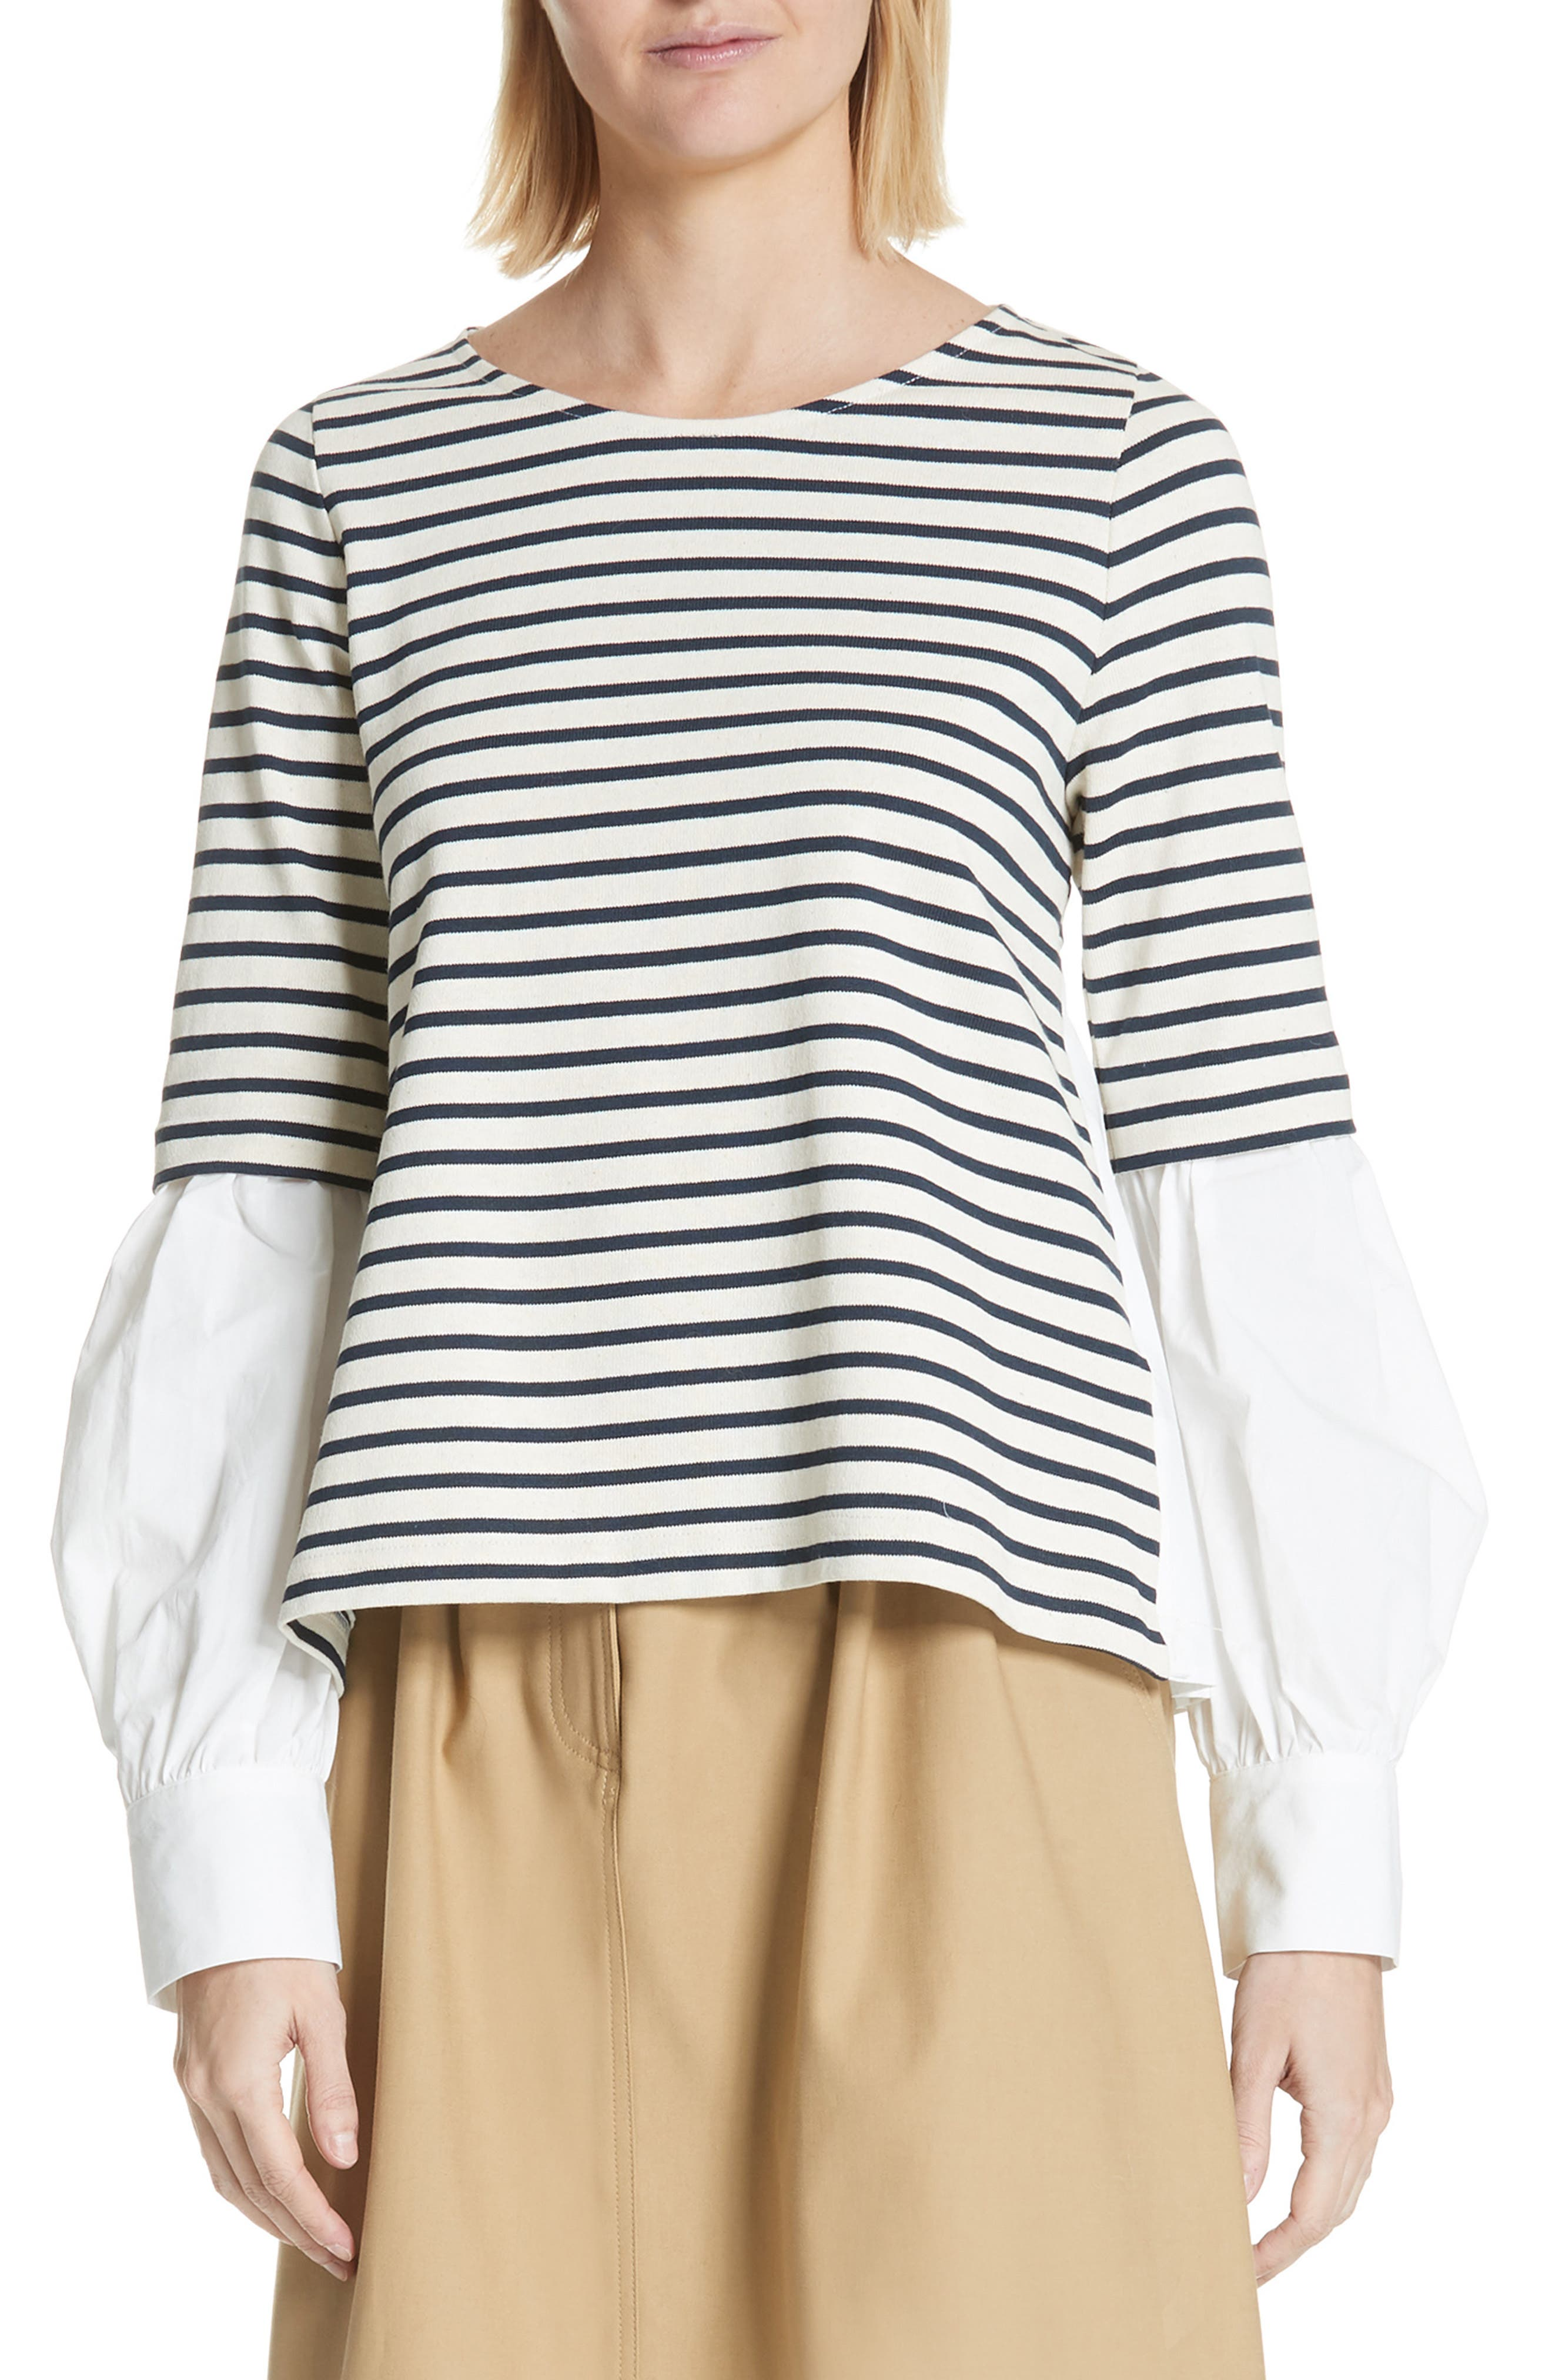 Levine Mixed Media Top,                             Main thumbnail 1, color,                             CREAM/ NAVY STRIPE